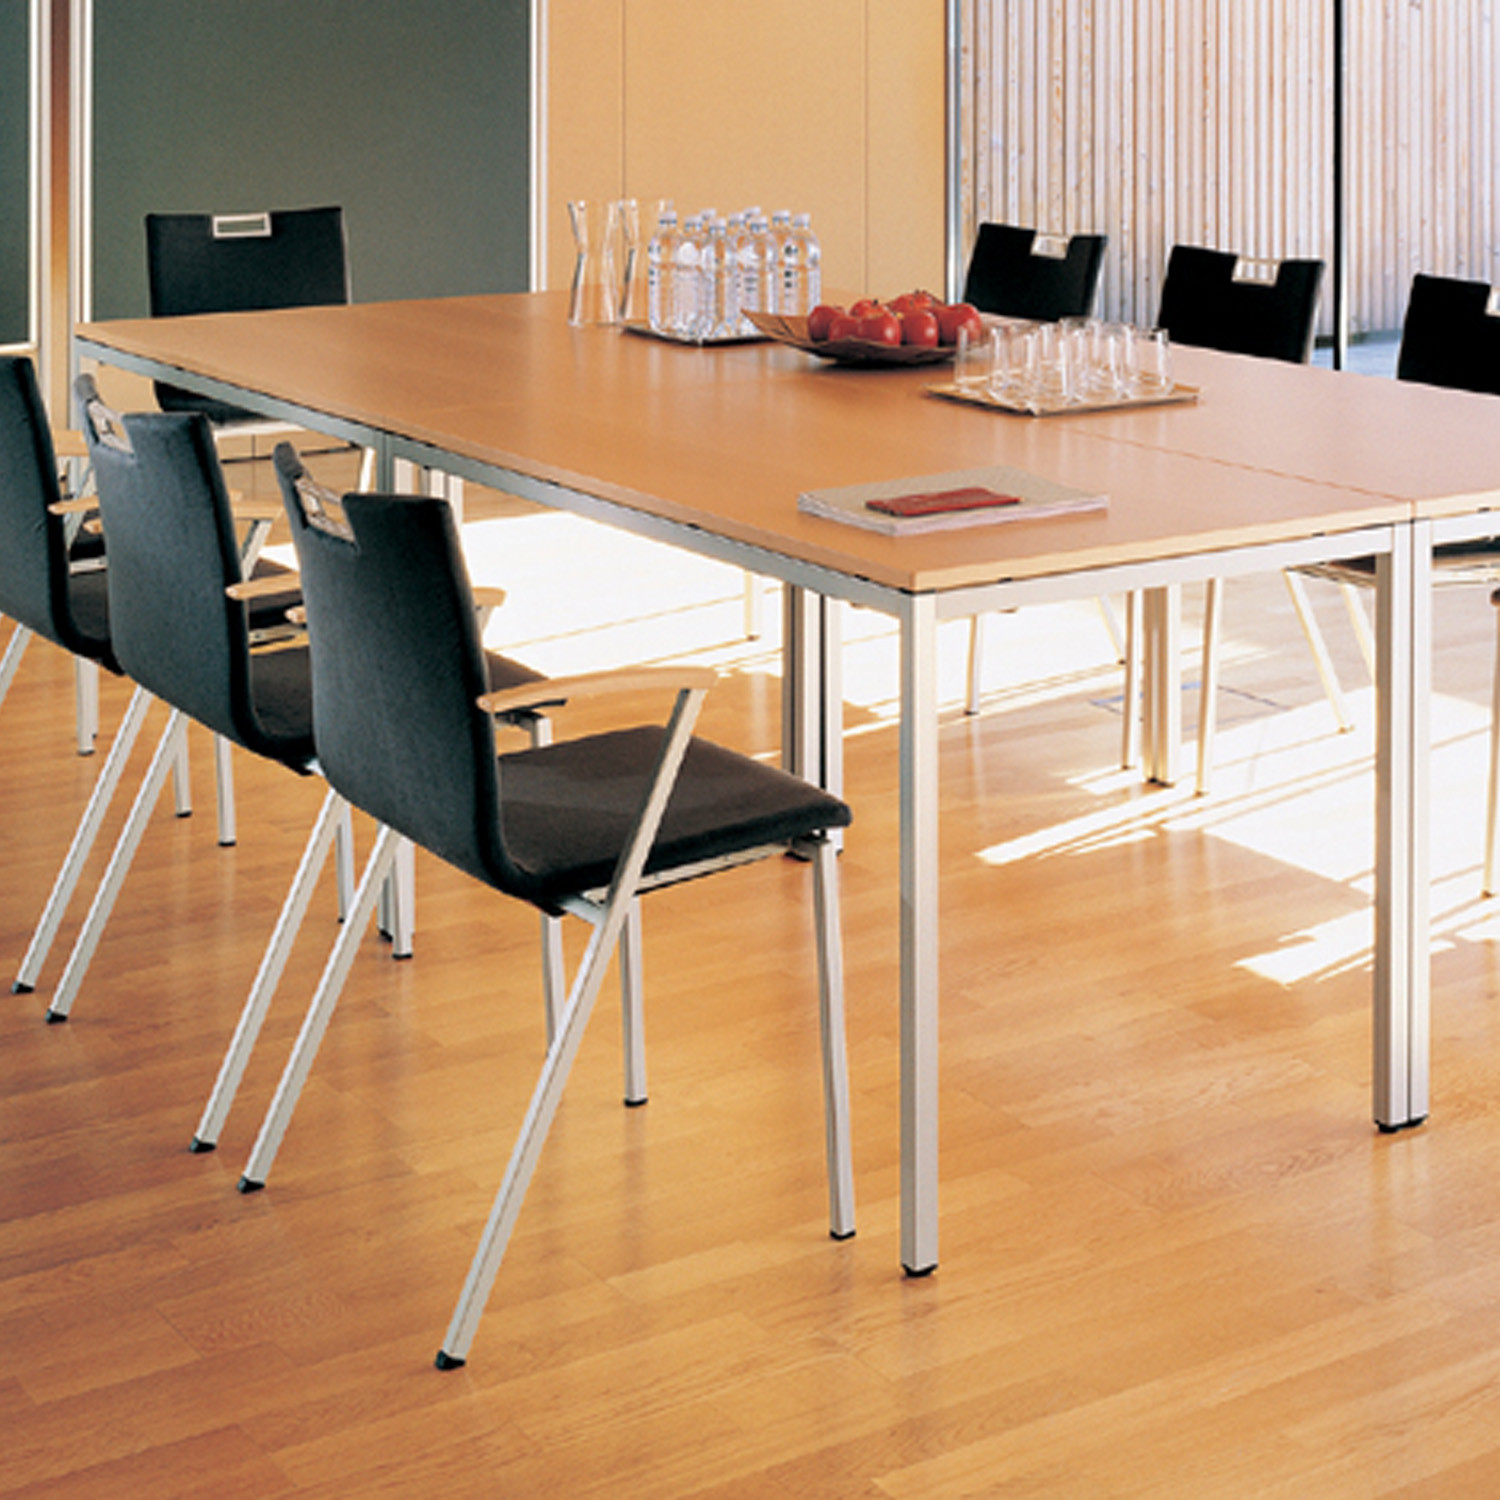 Clip Tables for Meetings